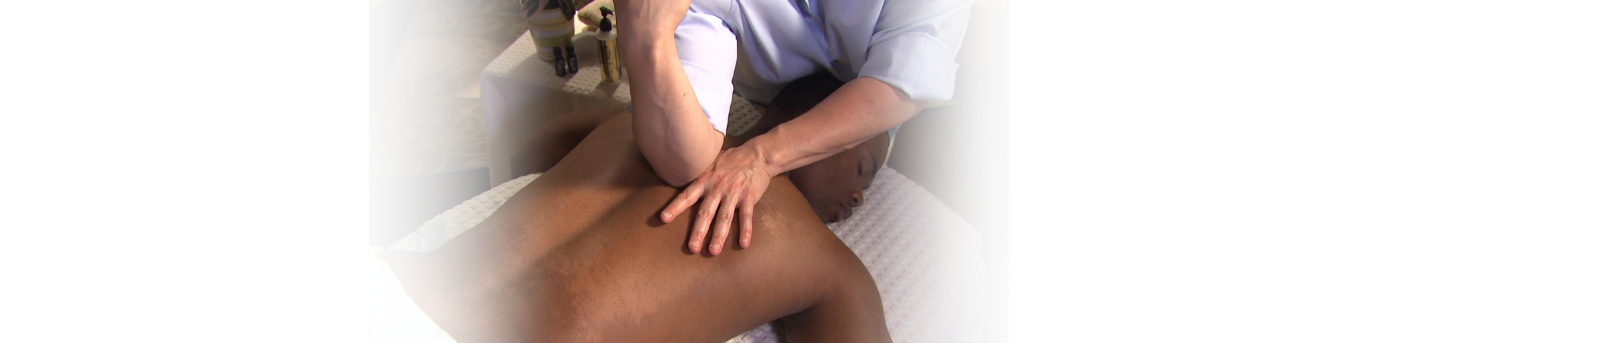 man receiving massage to back